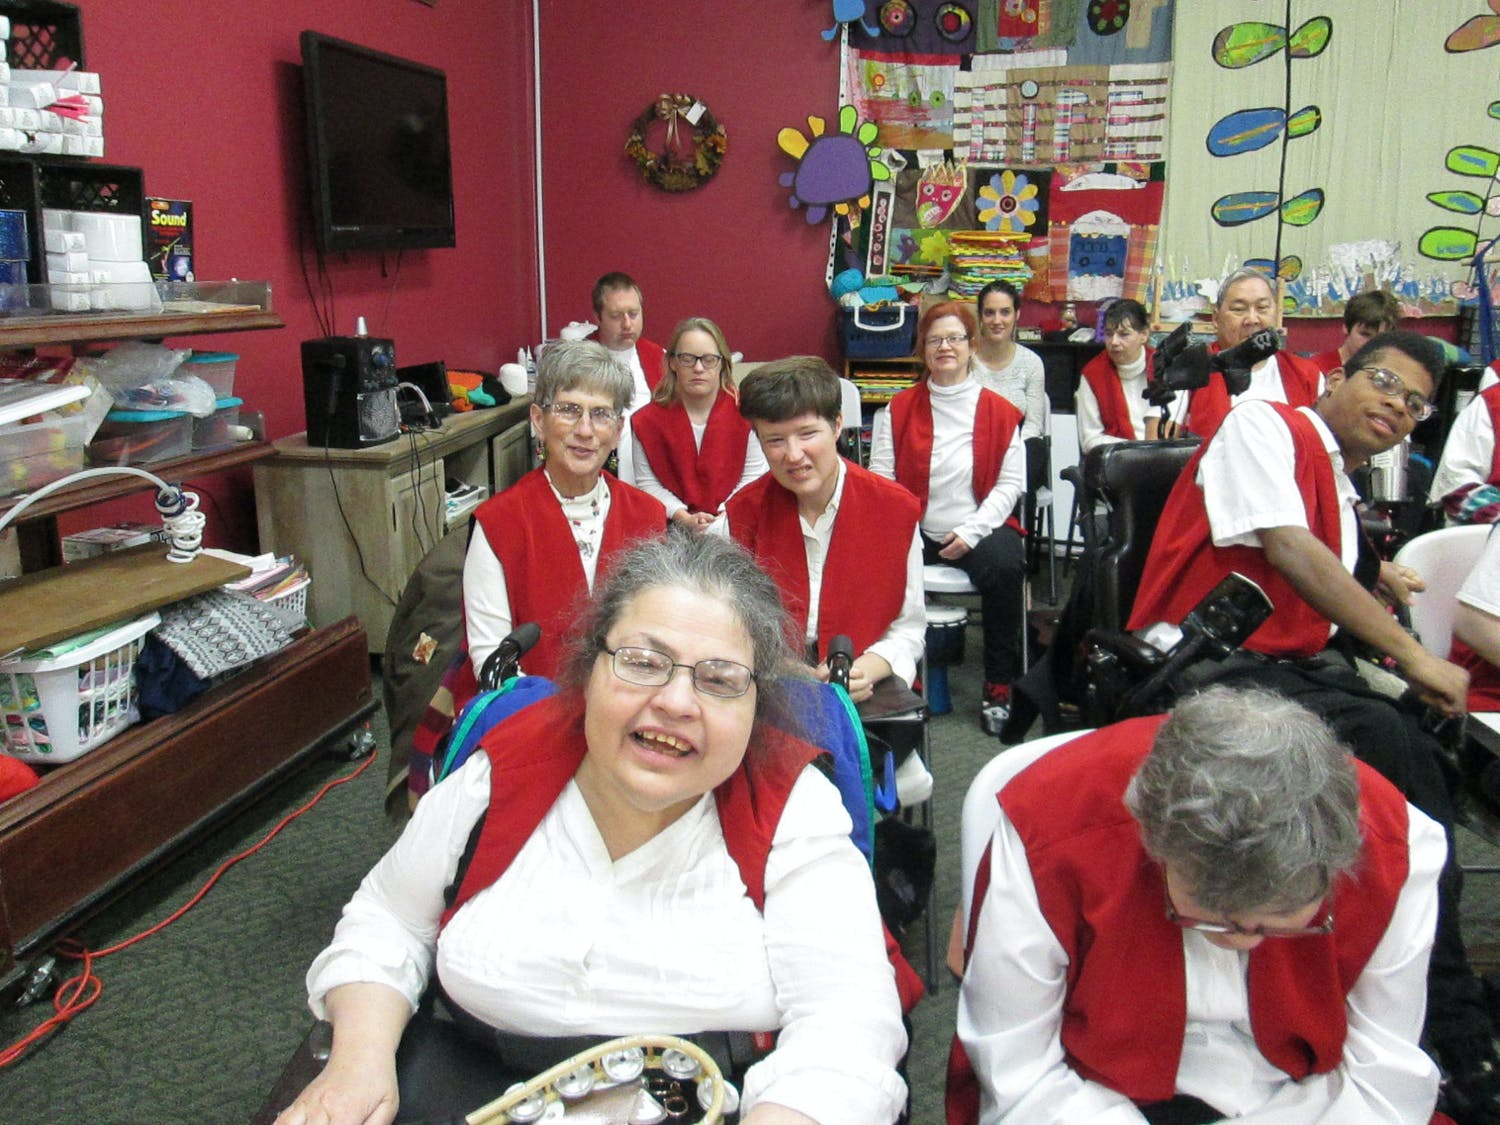 Athens County Community Singers